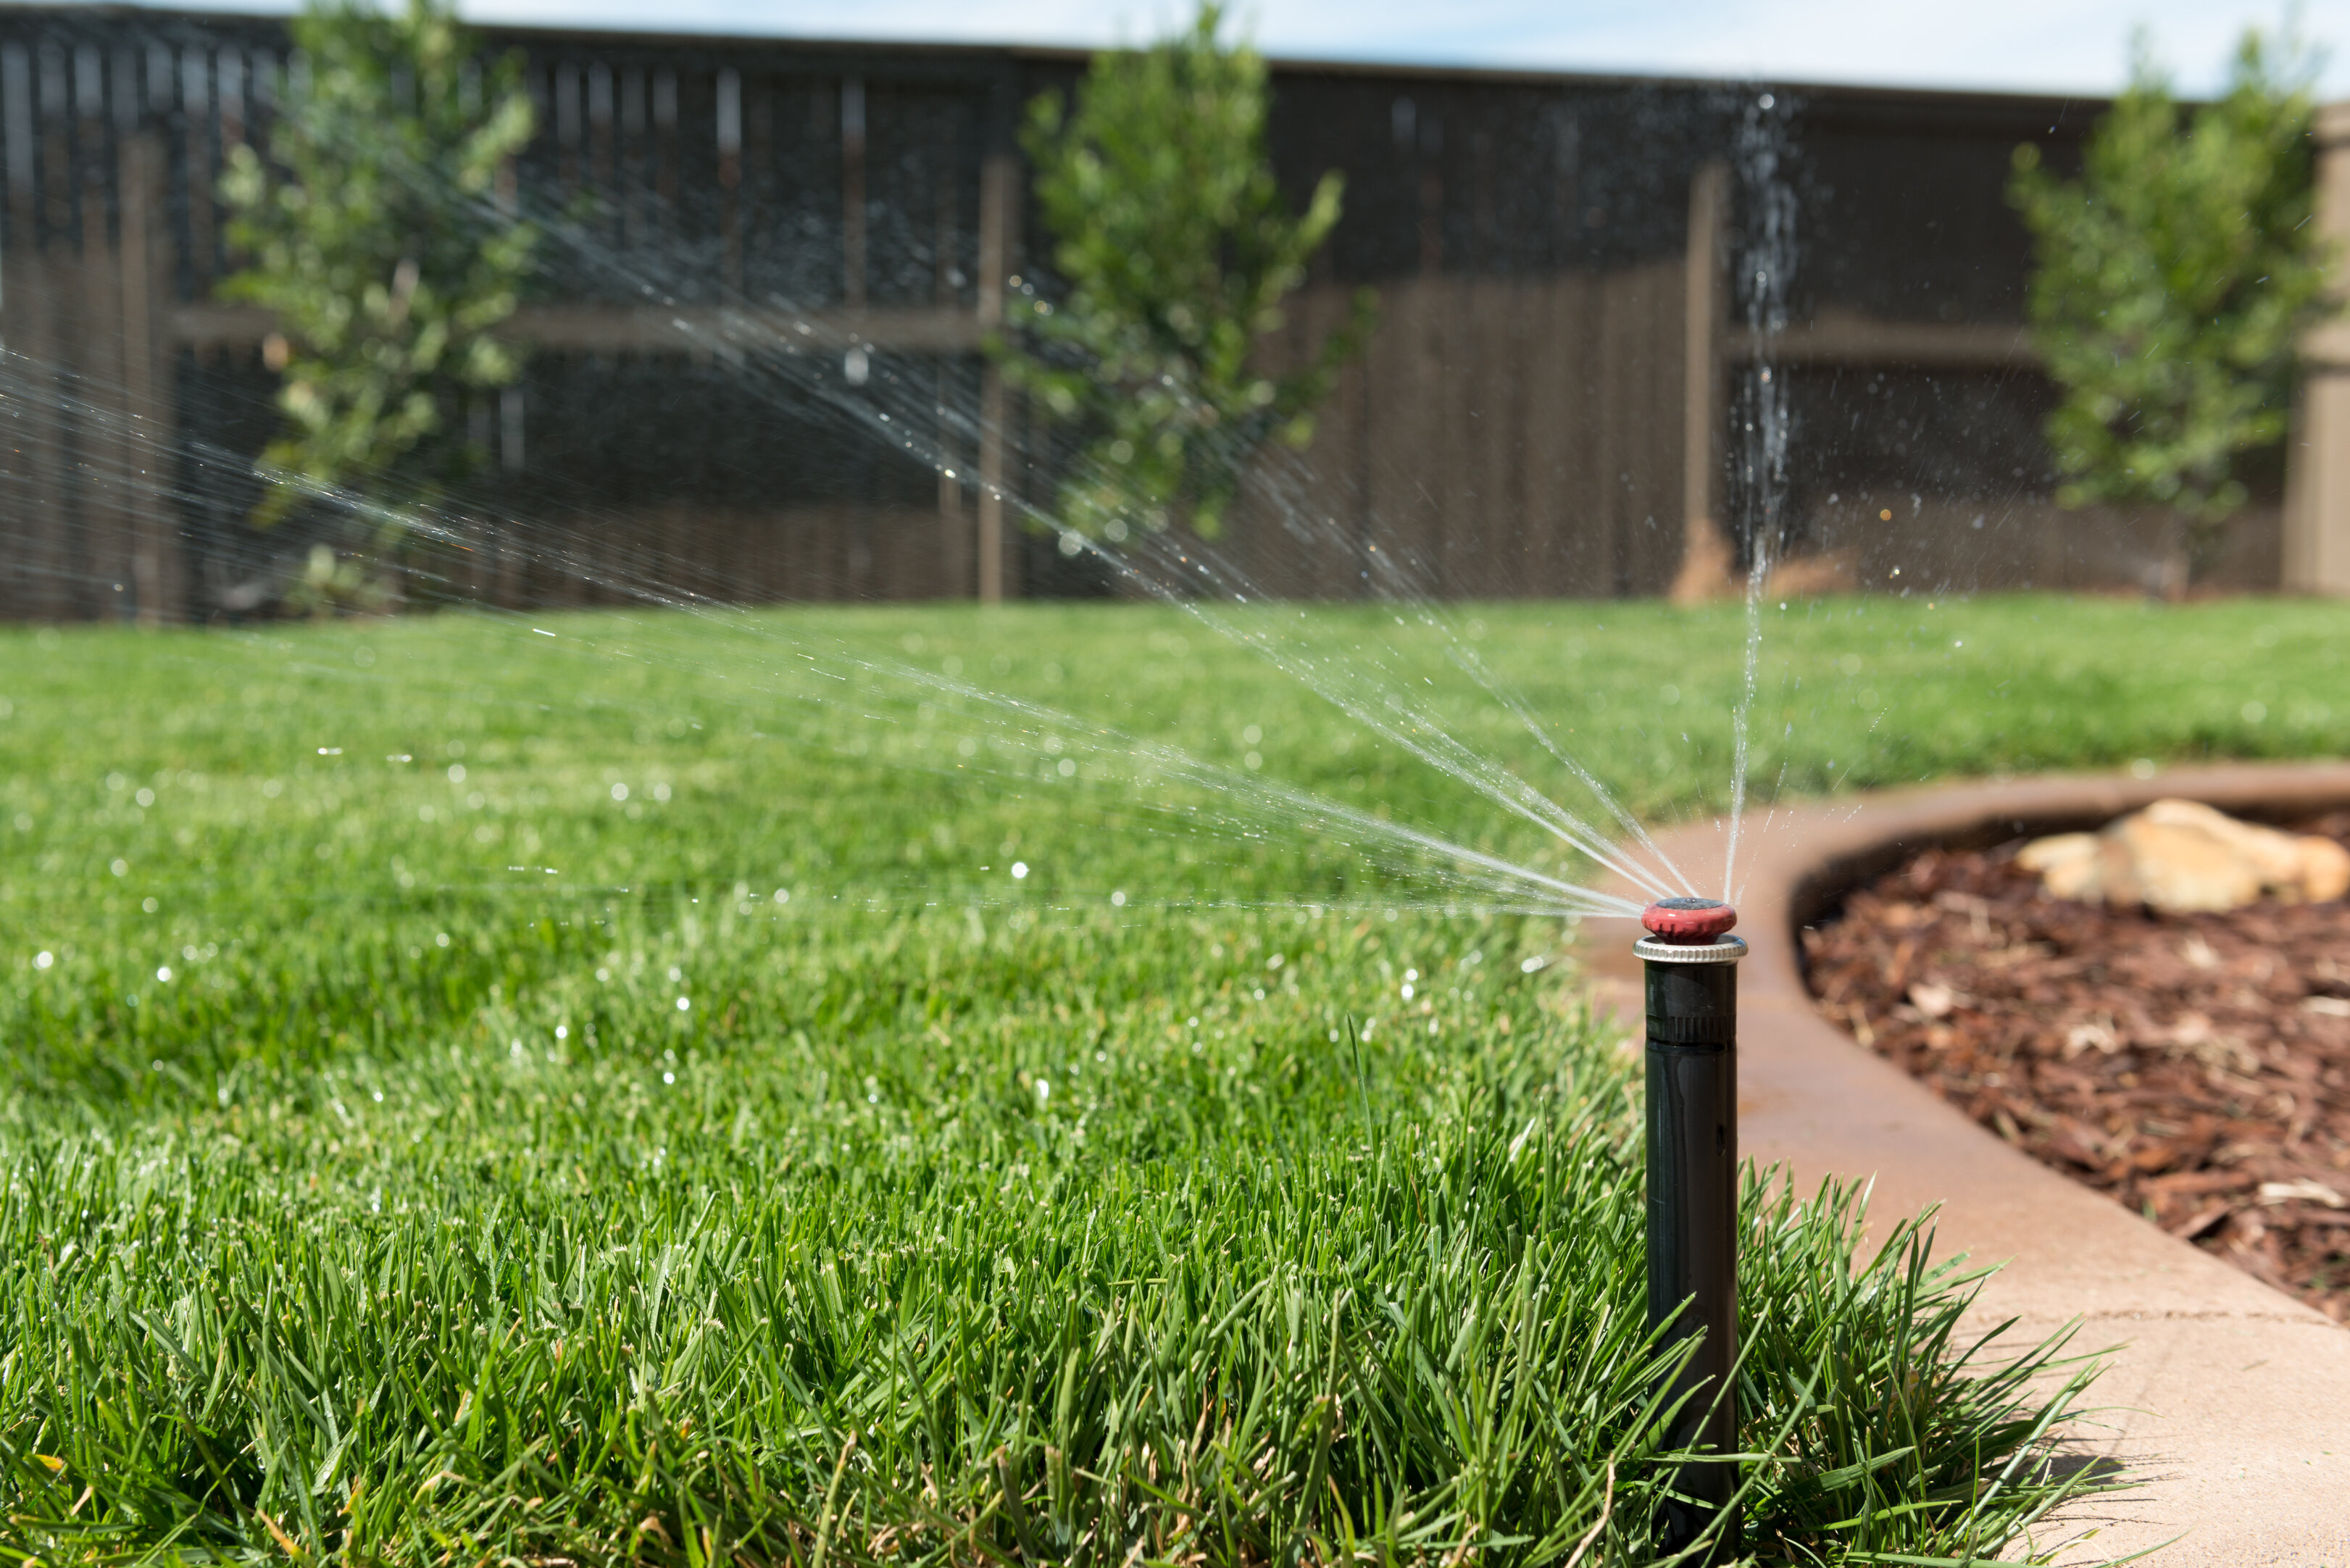 Close-up of a sprinkler in a yard